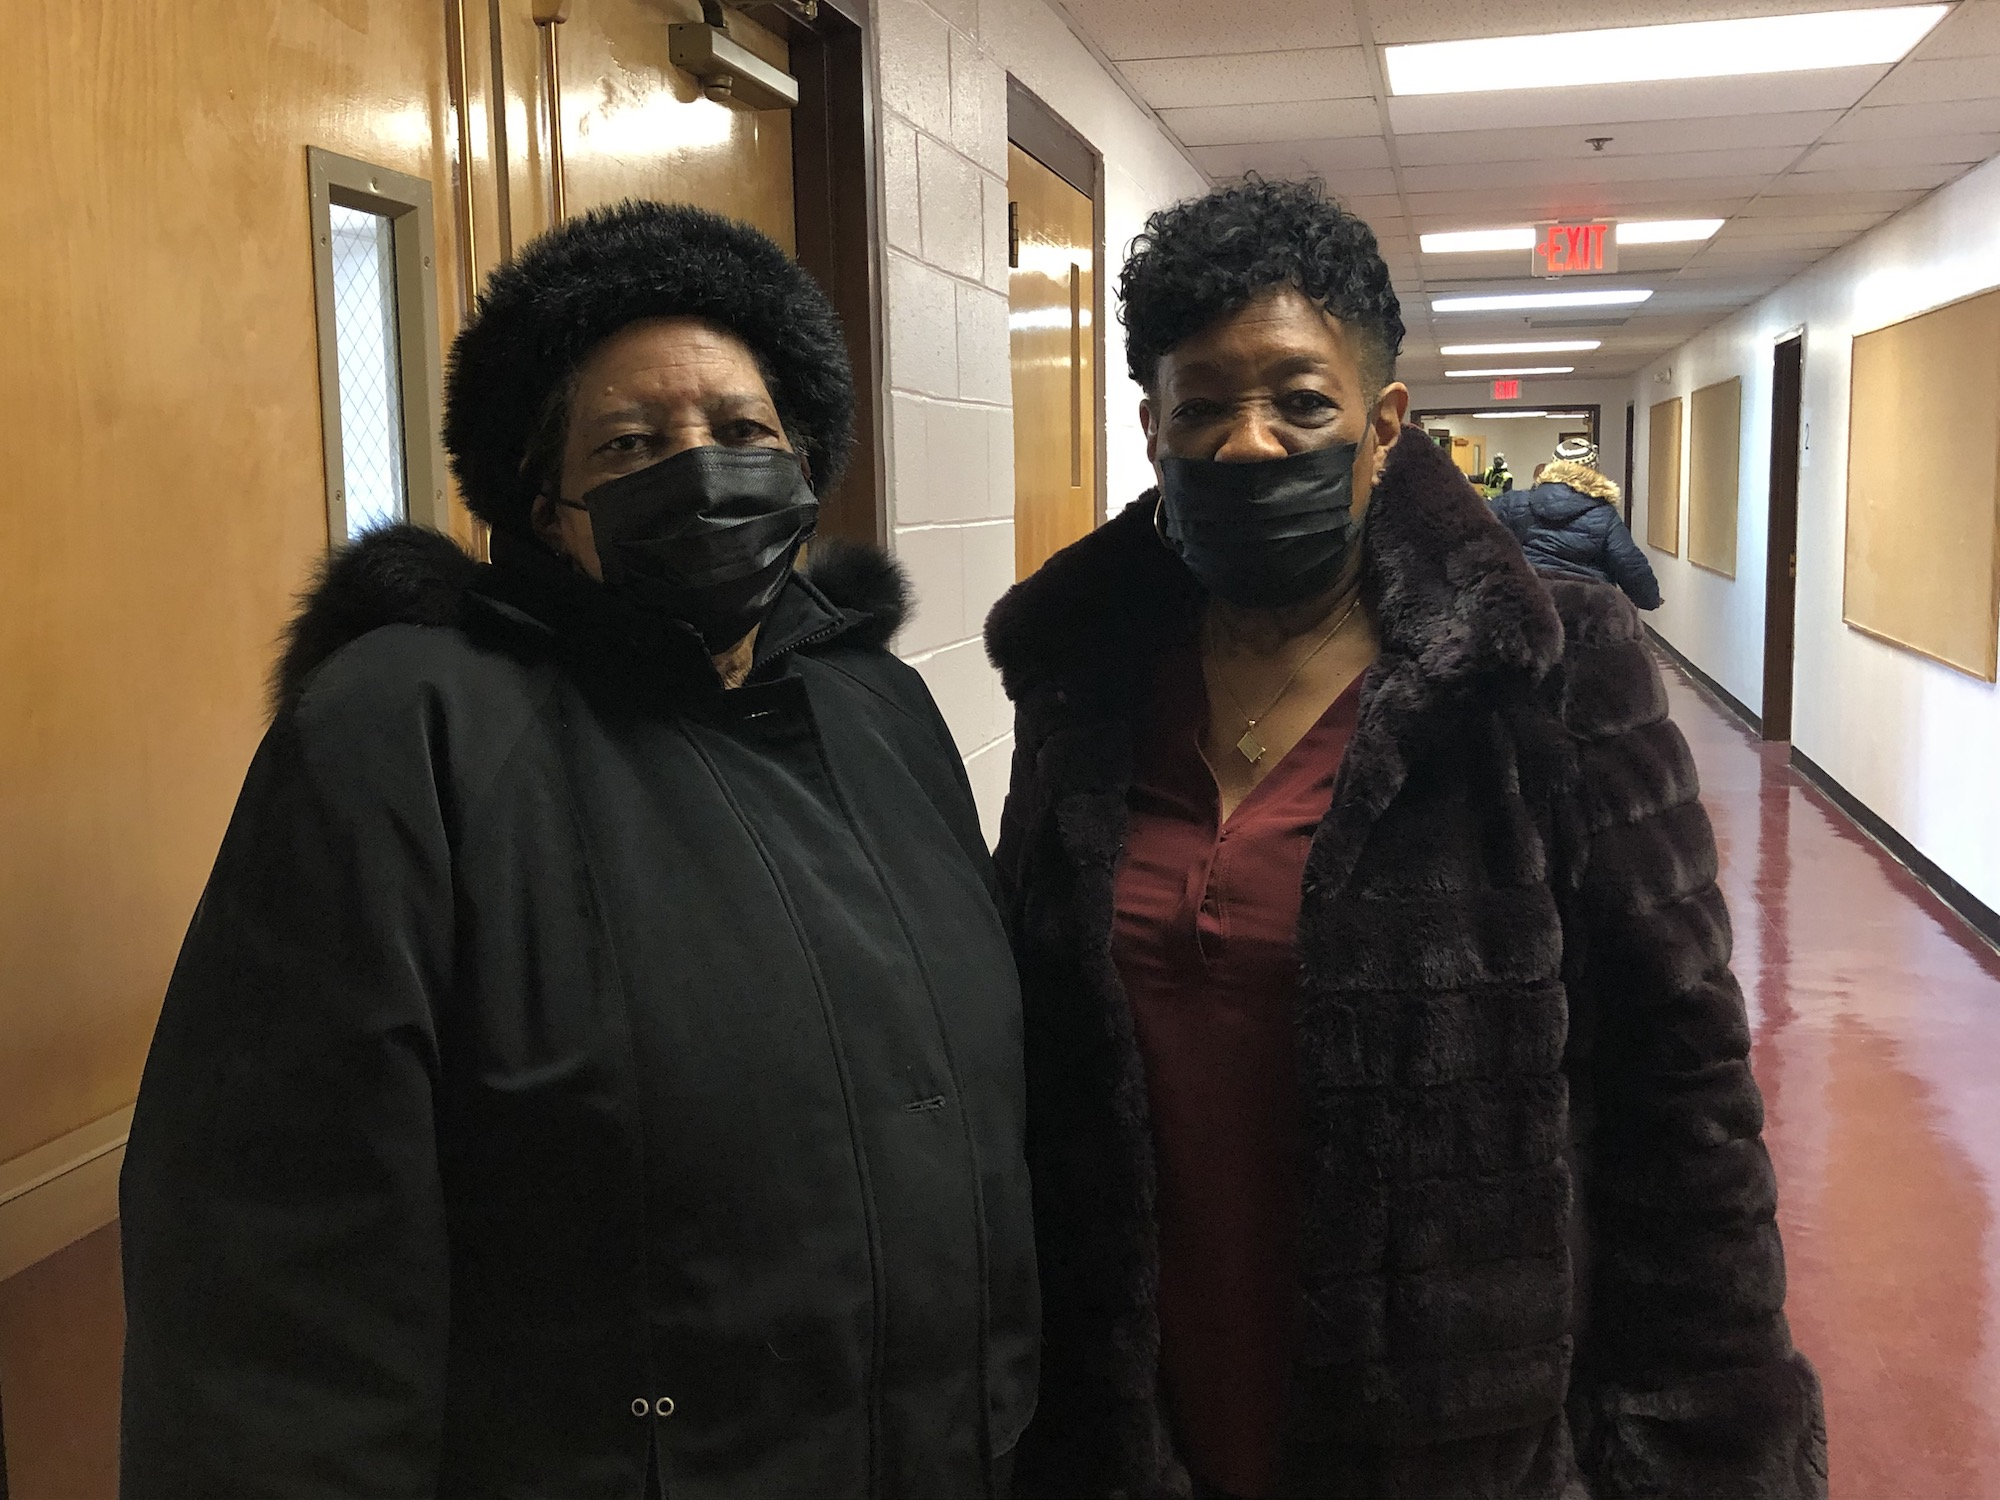 Linda Scott and Mary Lawton, both wearing face masks, stand in a hallfway